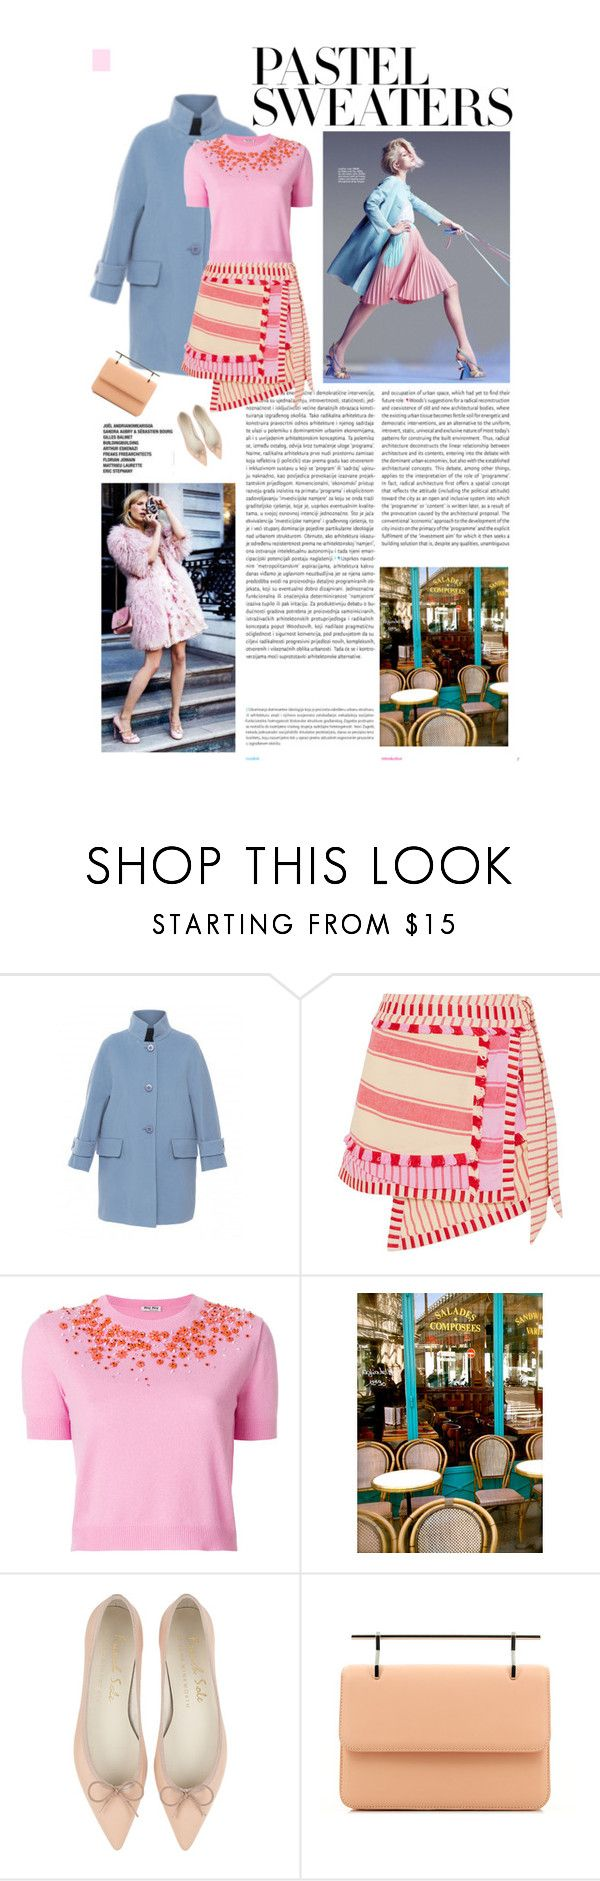 """""""Tuesday Afternoon in Pastel"""" by mgoslin ❤ liked on Polyvore featuring Oris, Les Copains, Dodo Bar Or, Miu Miu, WALL and M2Malletier"""